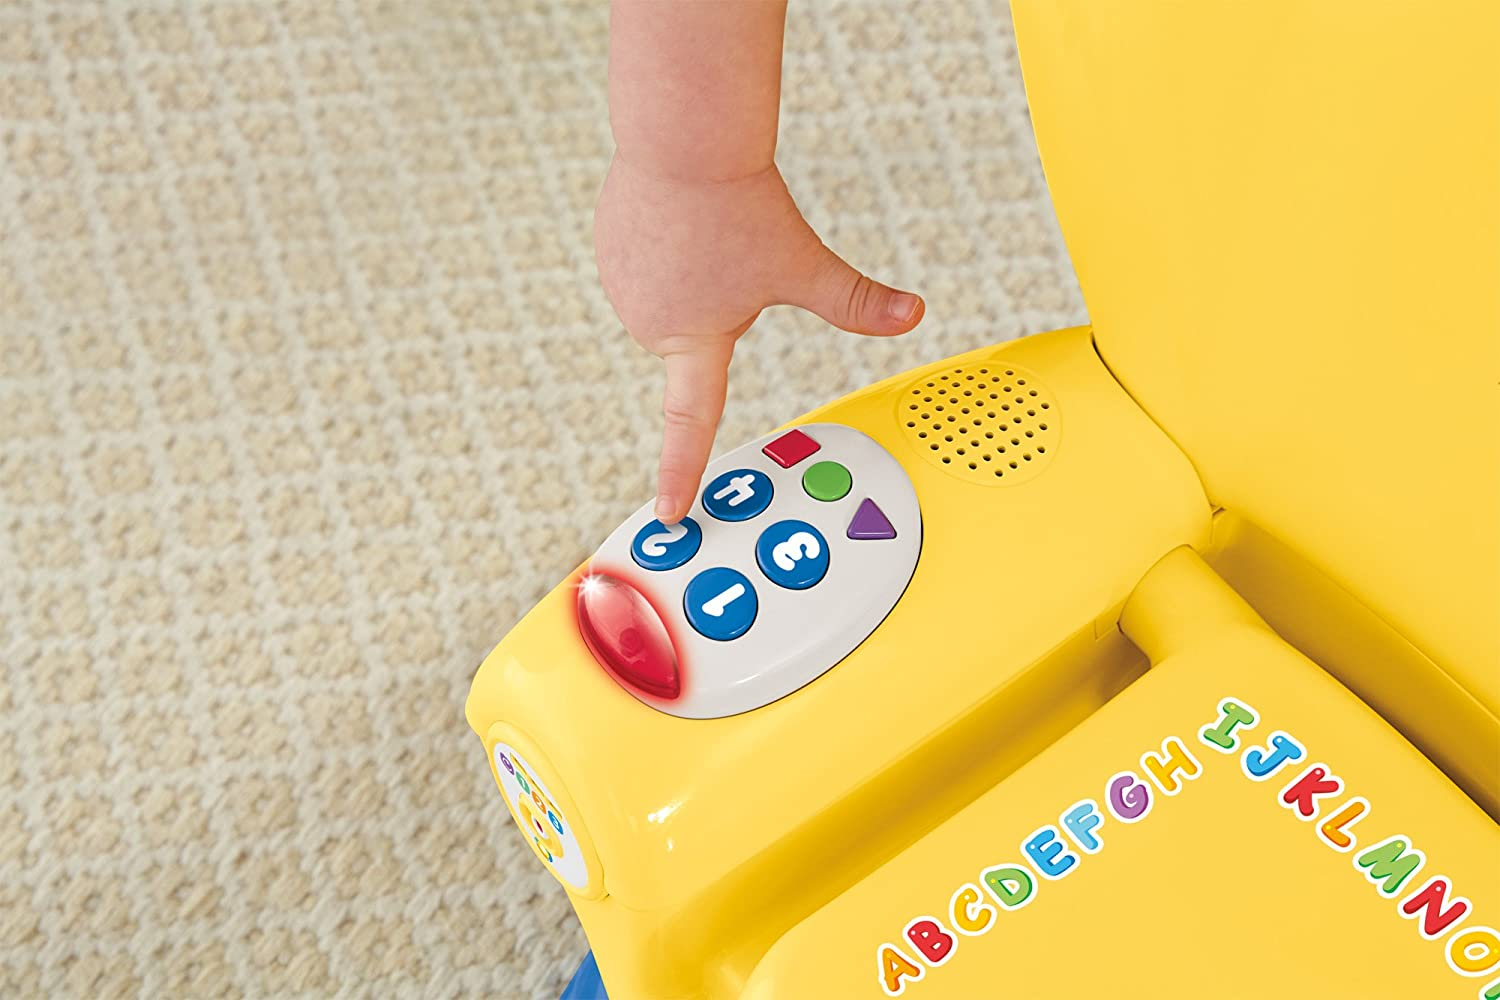 Fisher price smart stages chair - Buy Fisher Price Laugh And Learn Smart Stages Chair Online At Low Prices In India Amazon In